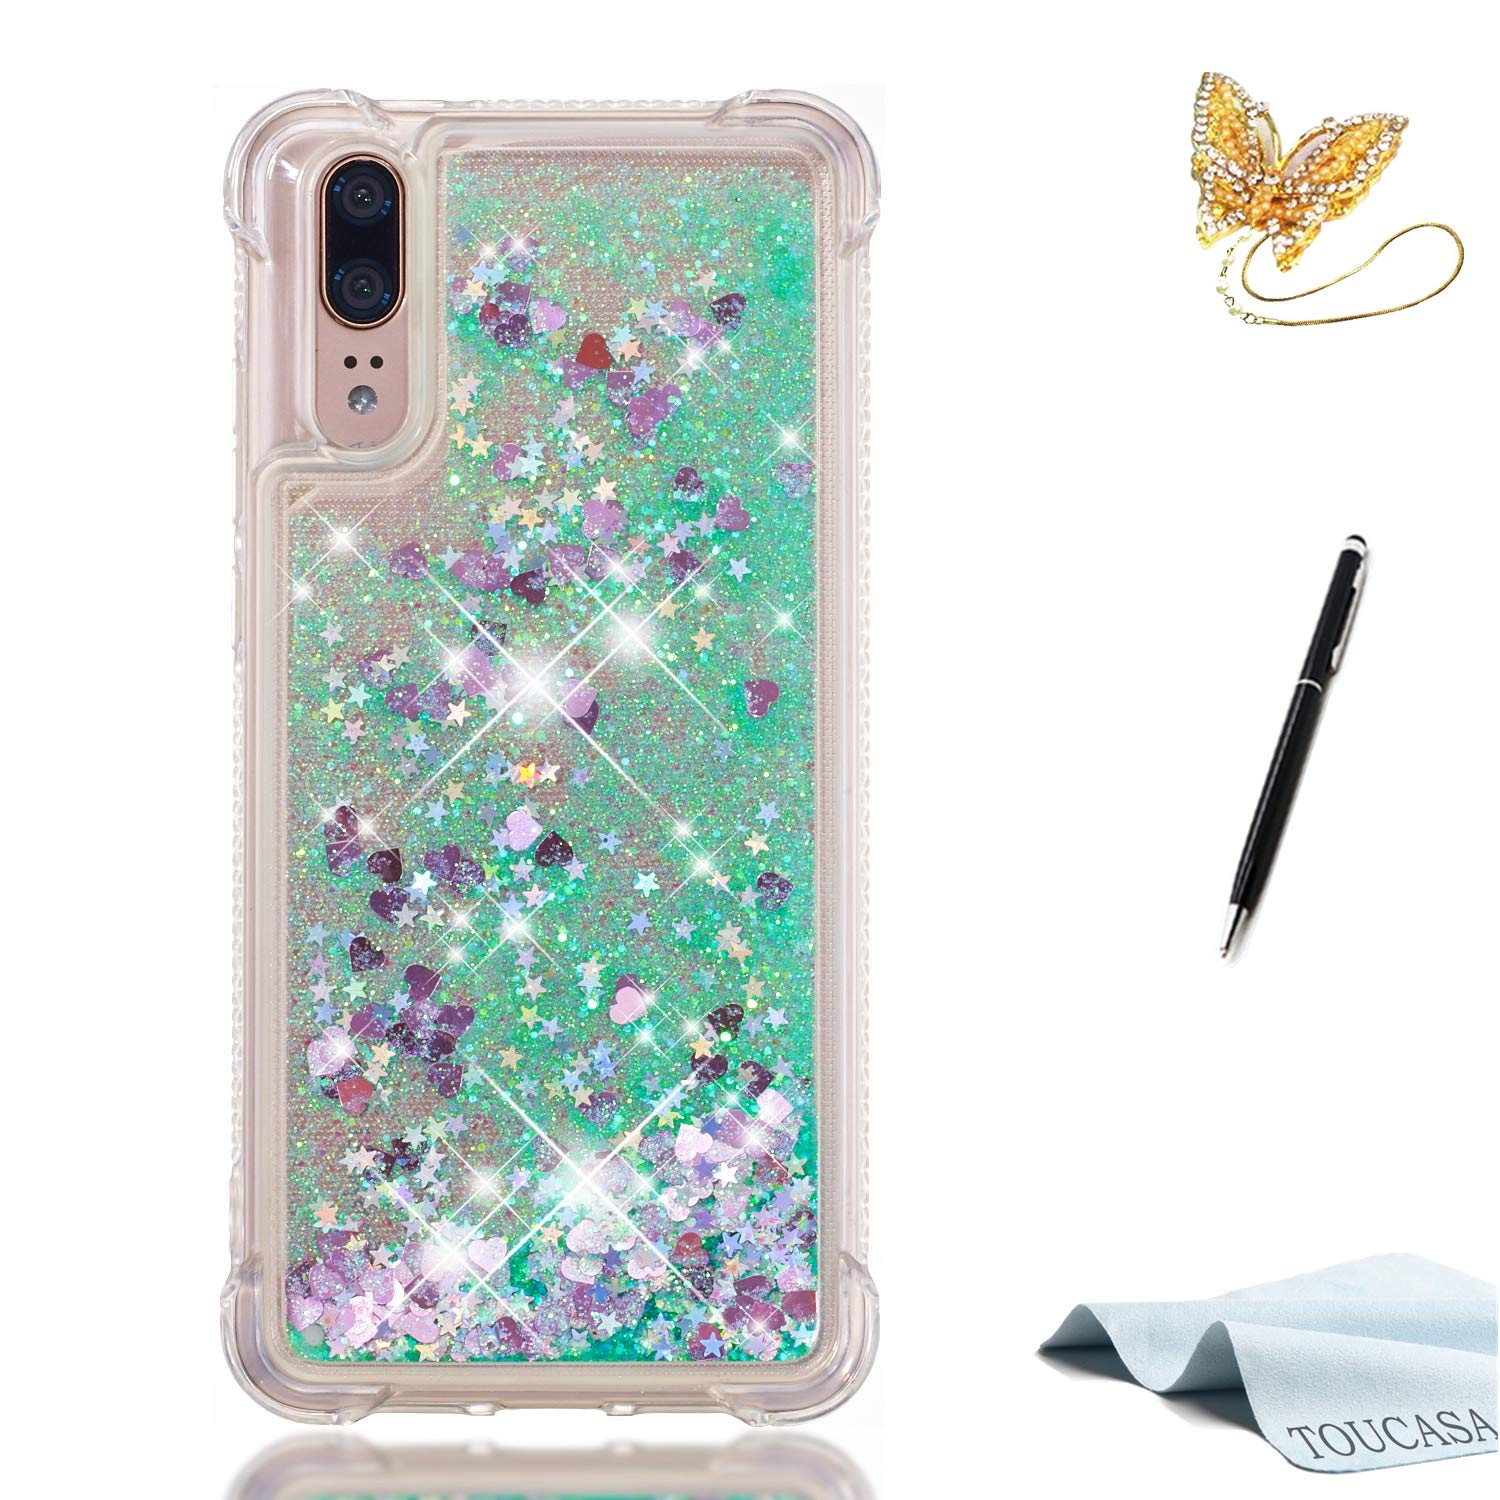 Coque Huawei P20 Lite, Housse Huawei P20 Lite, TOUCASA Anti Choc Silicone Coque, Bling Mince Souple Premium Hybrid Crystal Clear Flex Soft Gel Cover Skin Extra Slim Cristal Clair Gel TPU Neuf Style Brillant Bling Glitter Sparkle [LOVE] Etoiles liquides flo